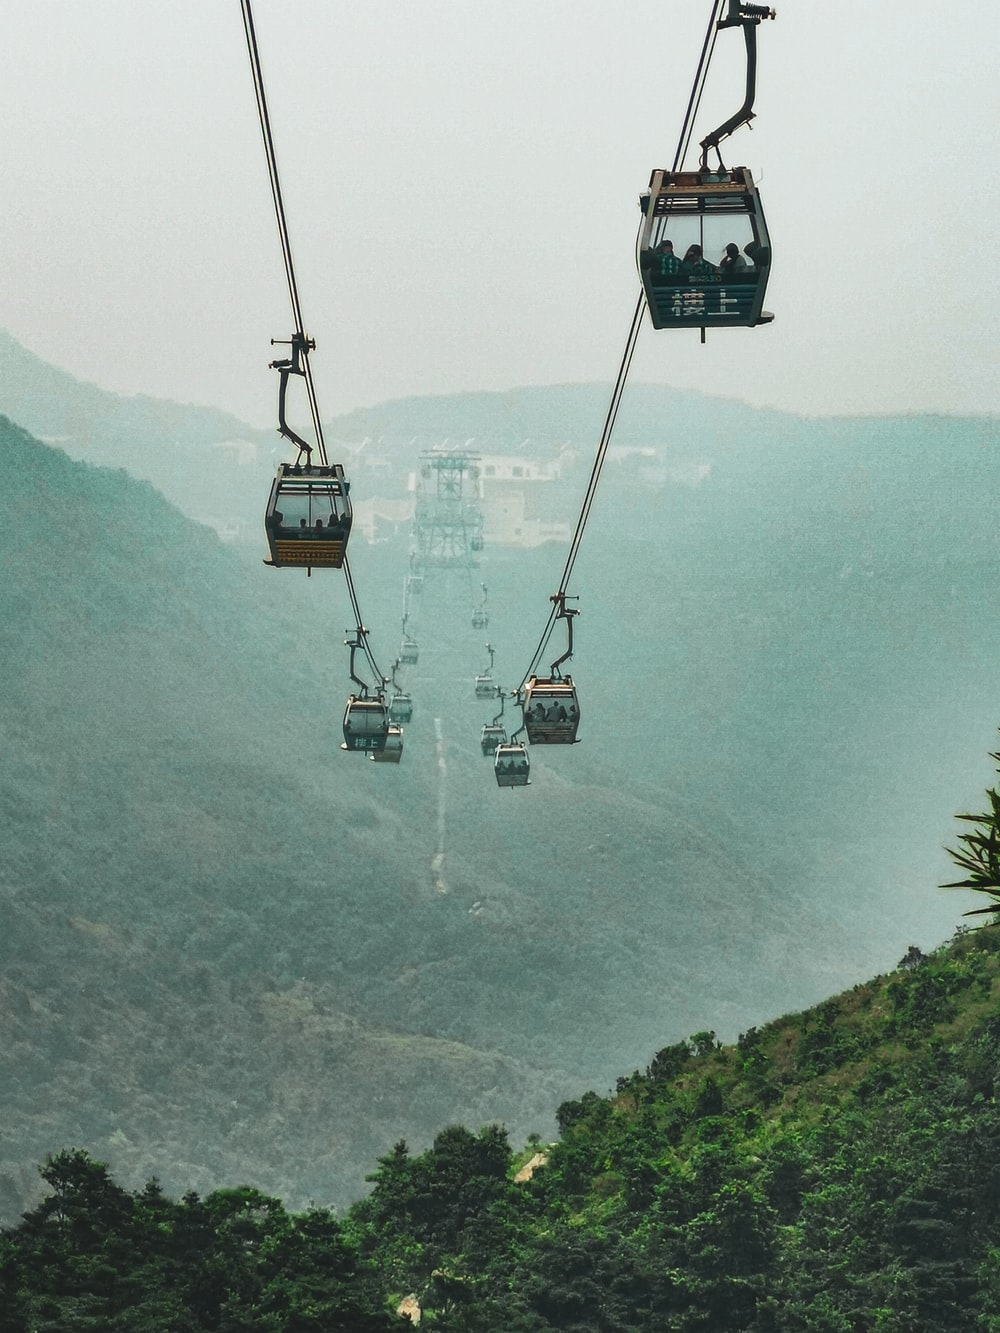 black cable car over green mountain during daytime